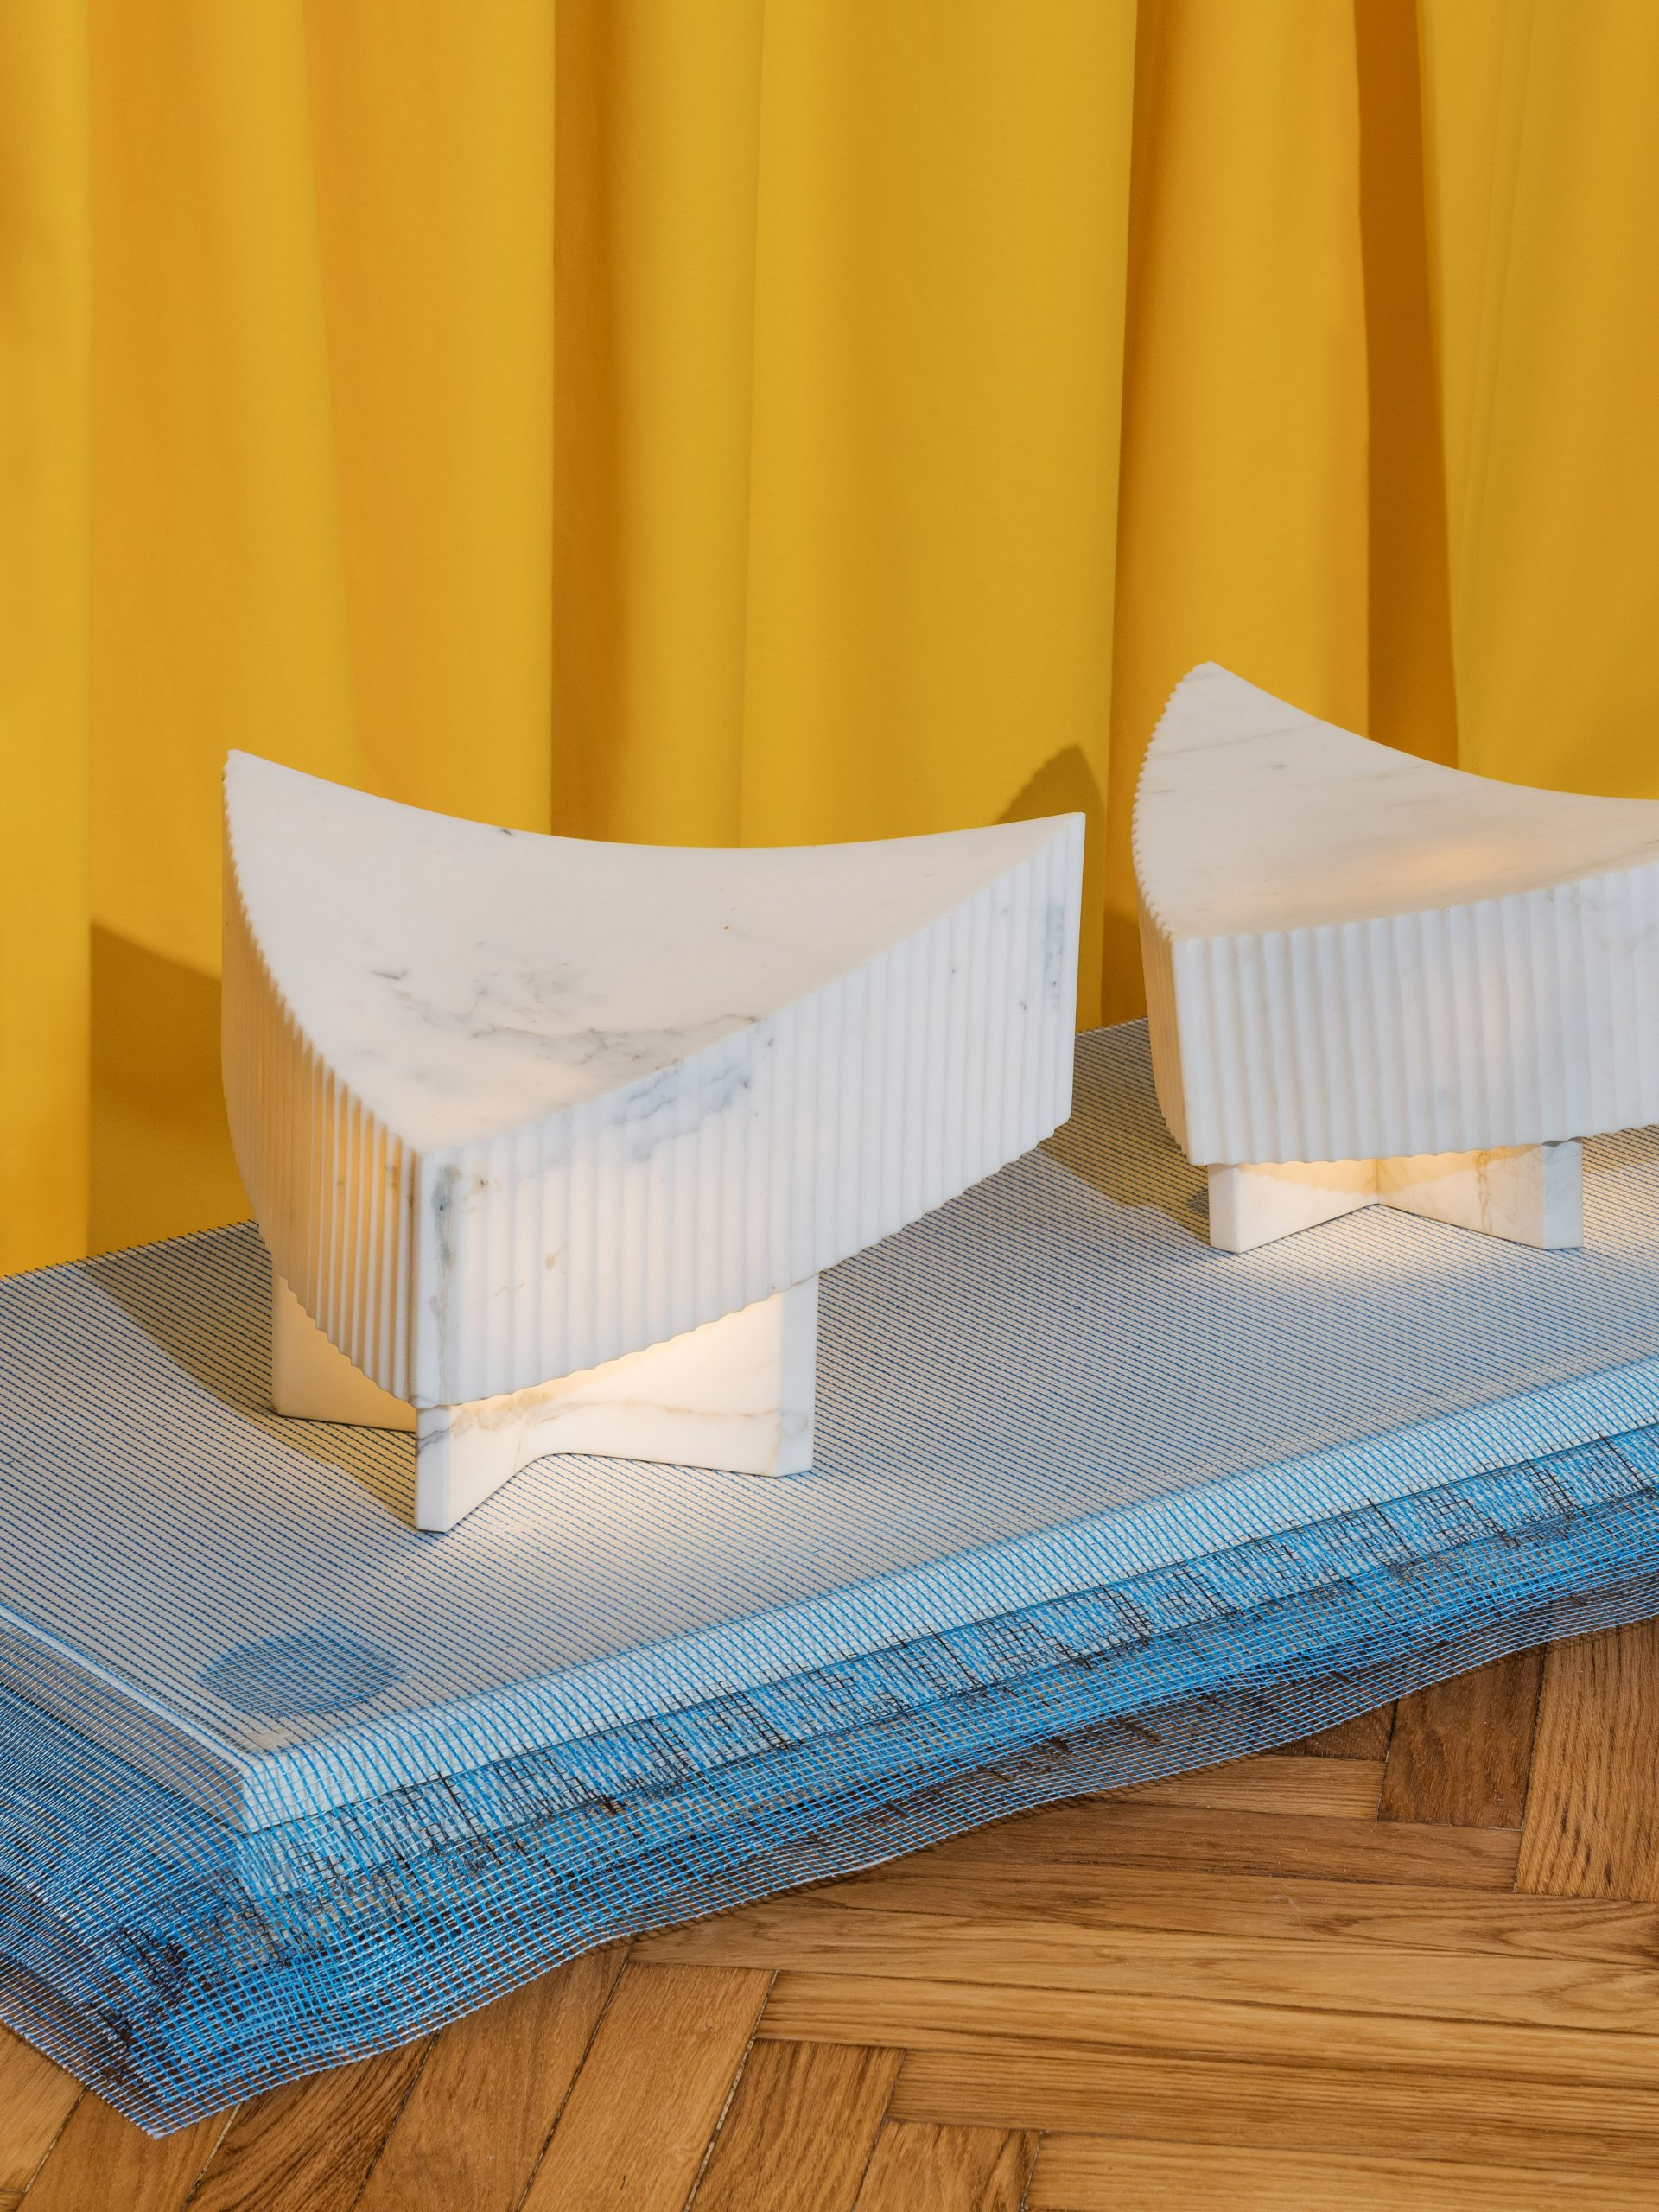 The Gunnol lamps by Older studio and Alexander Vinther